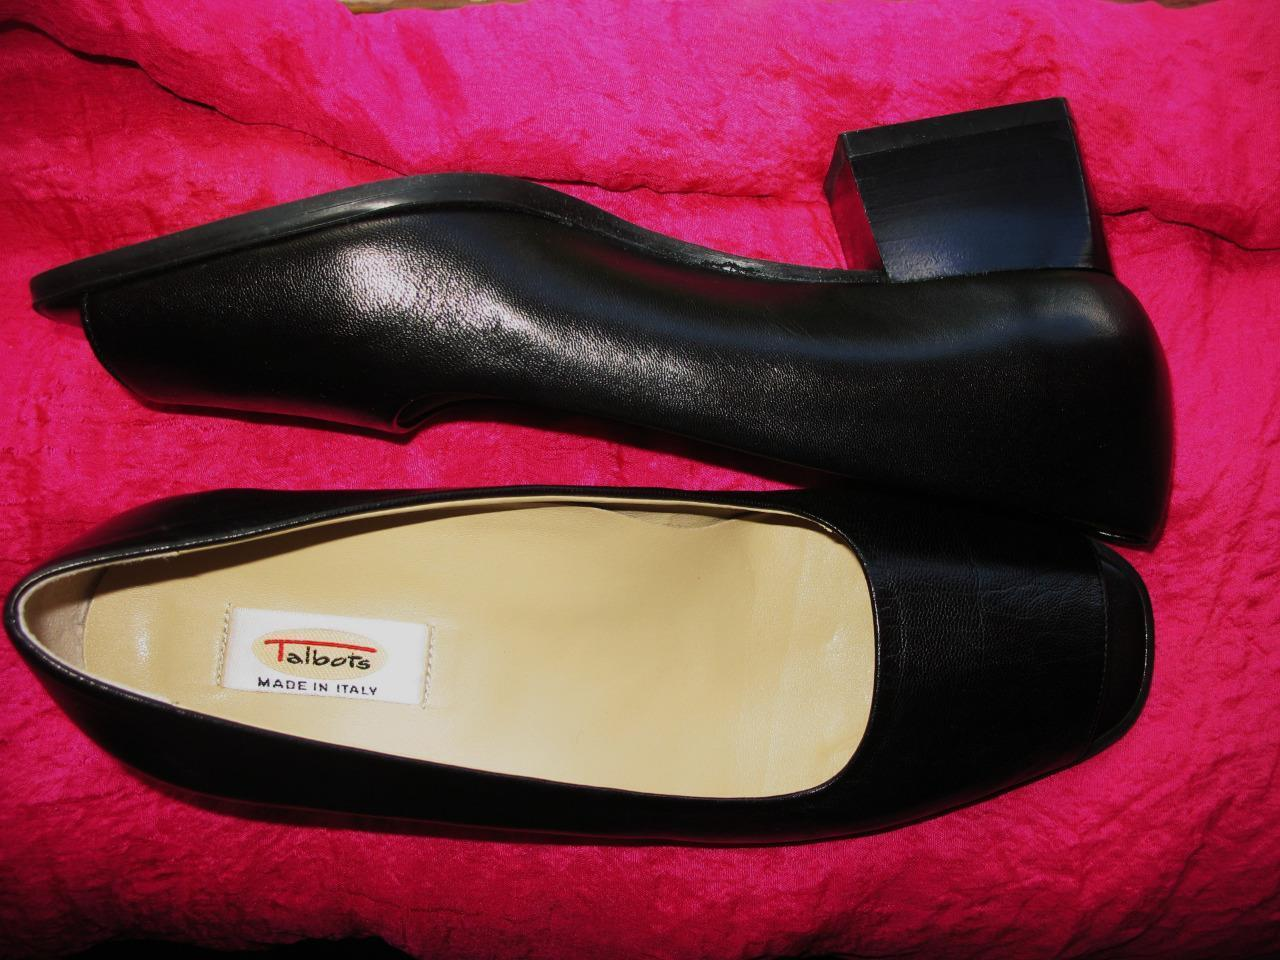 TALBOTS chaussures Cuir noir Bout Ouvert Mocassins  Taille 7 M 37  Made in